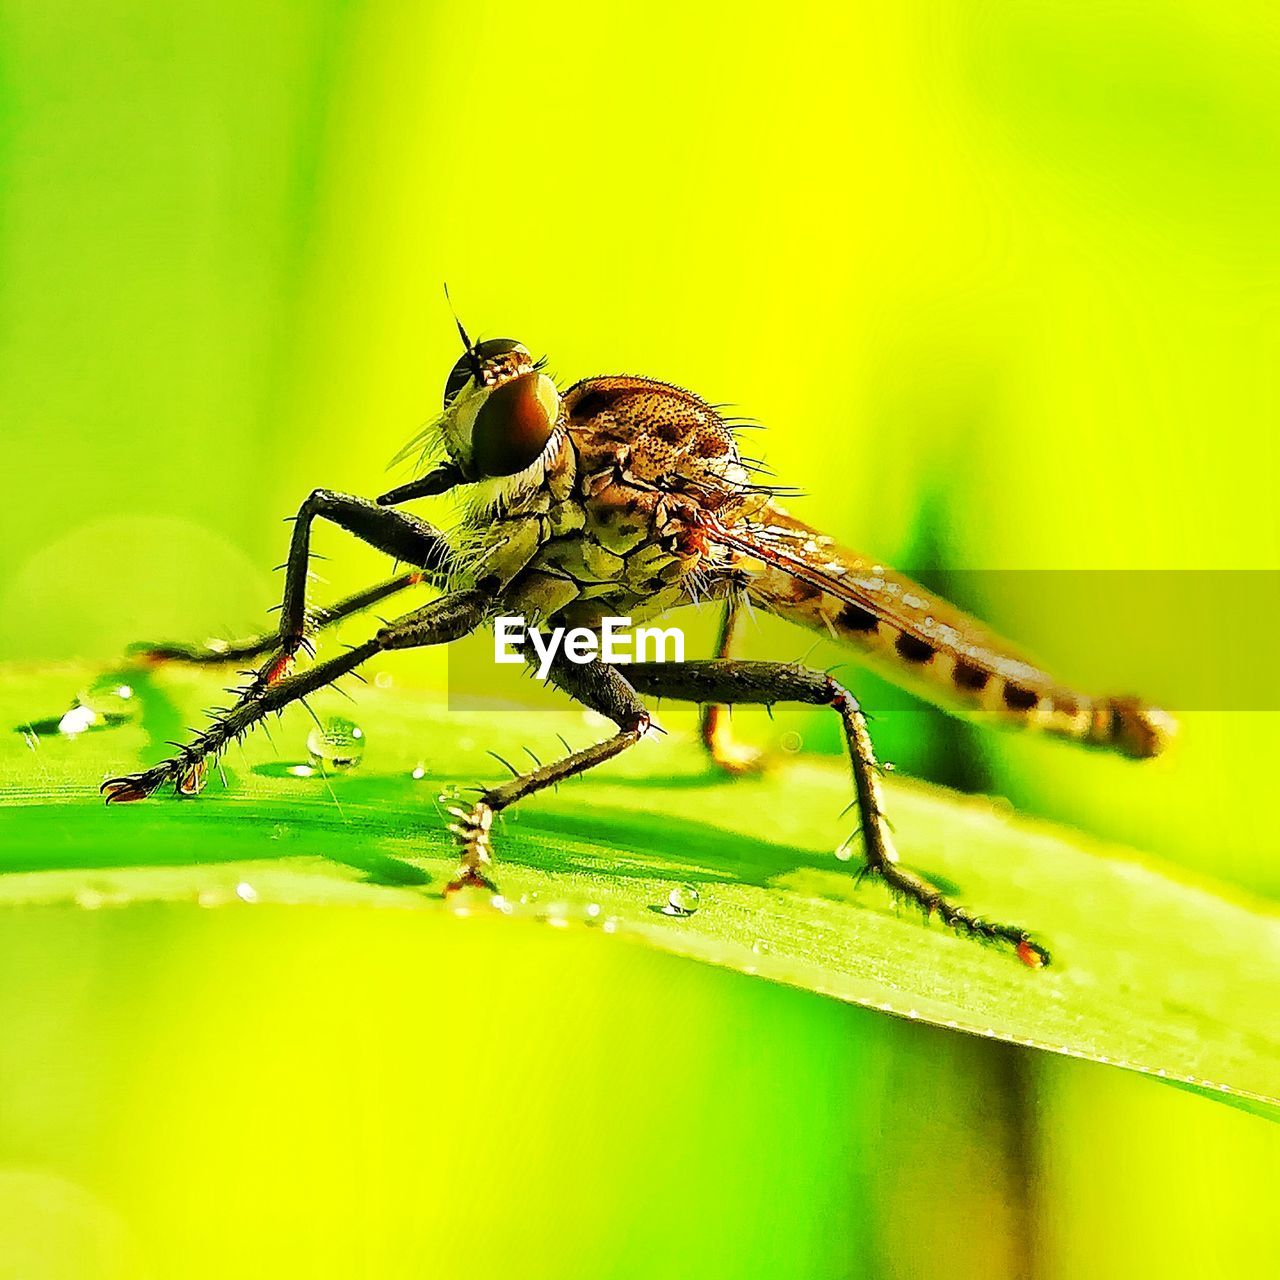 invertebrate, insect, animal themes, animal wildlife, animal, animals in the wild, one animal, green color, close-up, plant part, leaf, no people, plant, animal body part, zoology, selective focus, nature, animal leg, day, outdoors, animal wing, animal eye